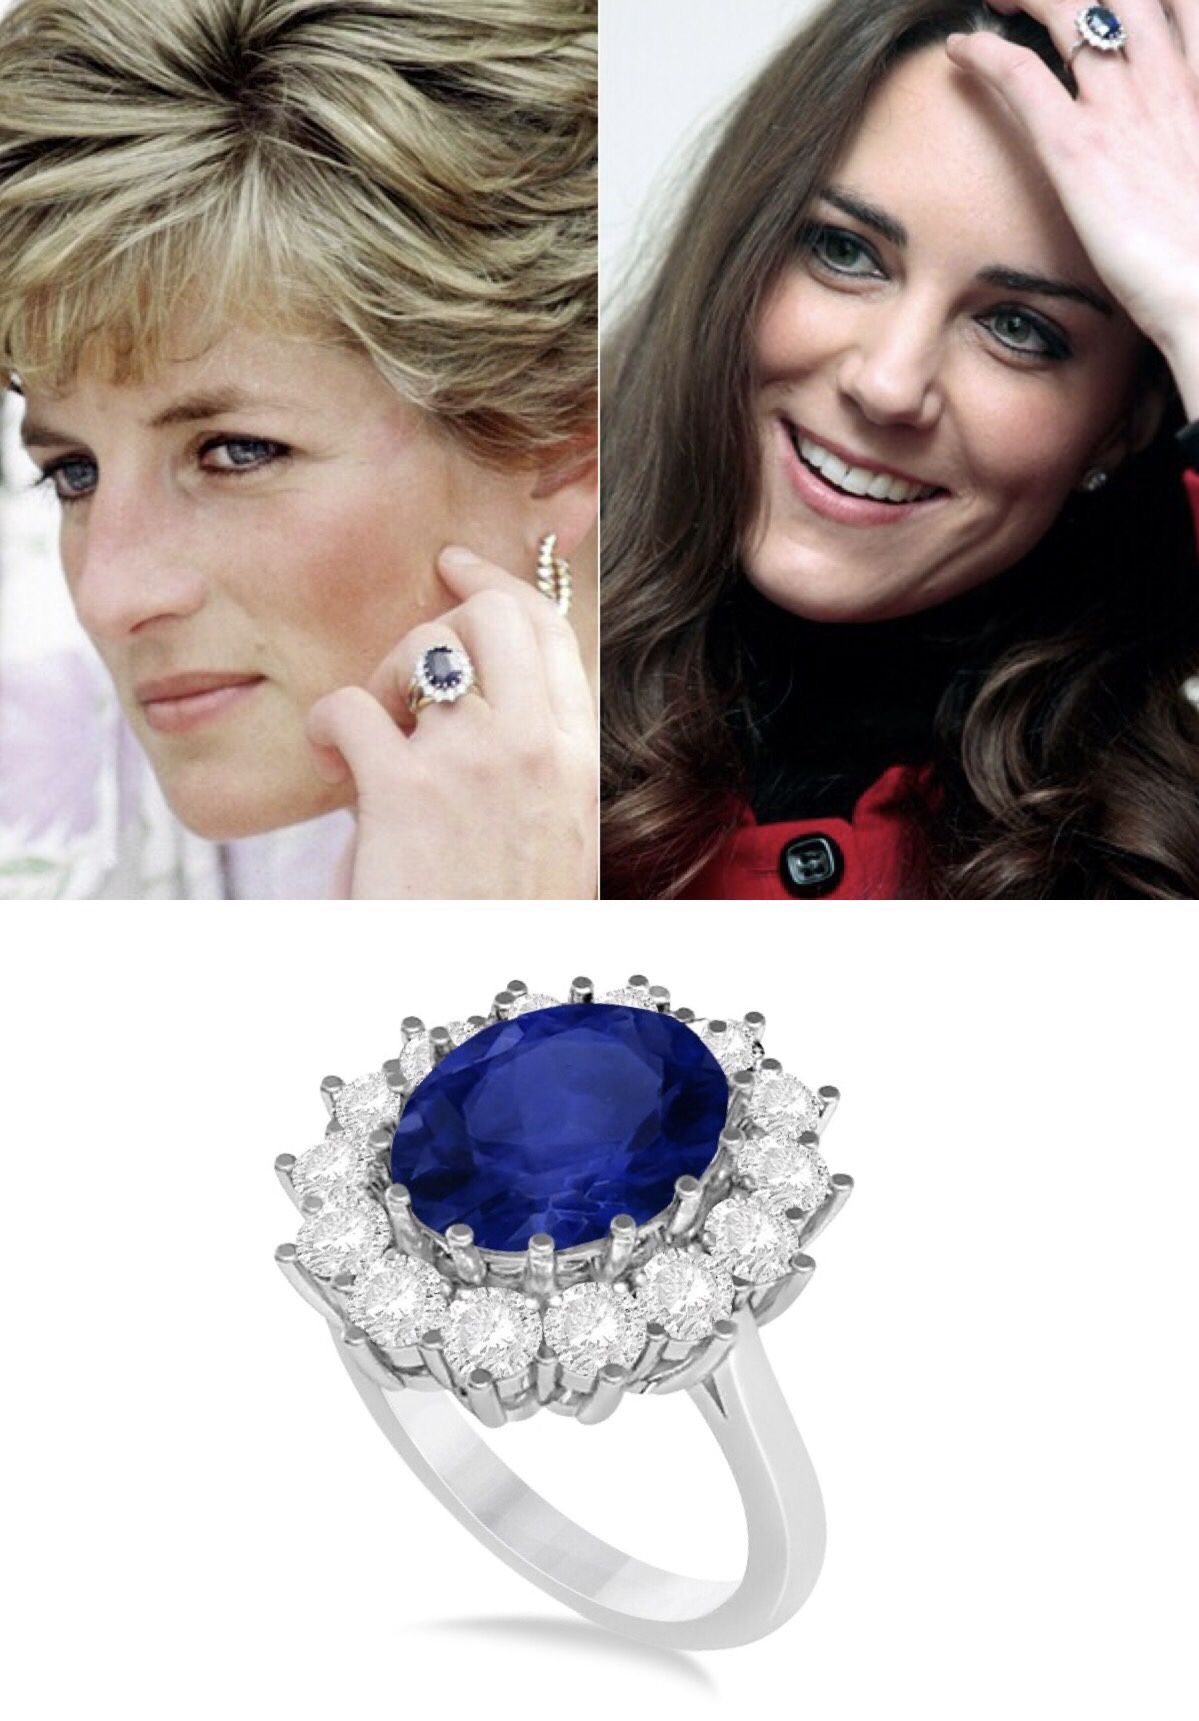 Oval Blue Sapphire Diamond Accented Ring 14k White Gold 5 40ctw In 2020 Kate Middleton Engagement Ring Kate Middleton Jewelry Blue Sapphire Diamond